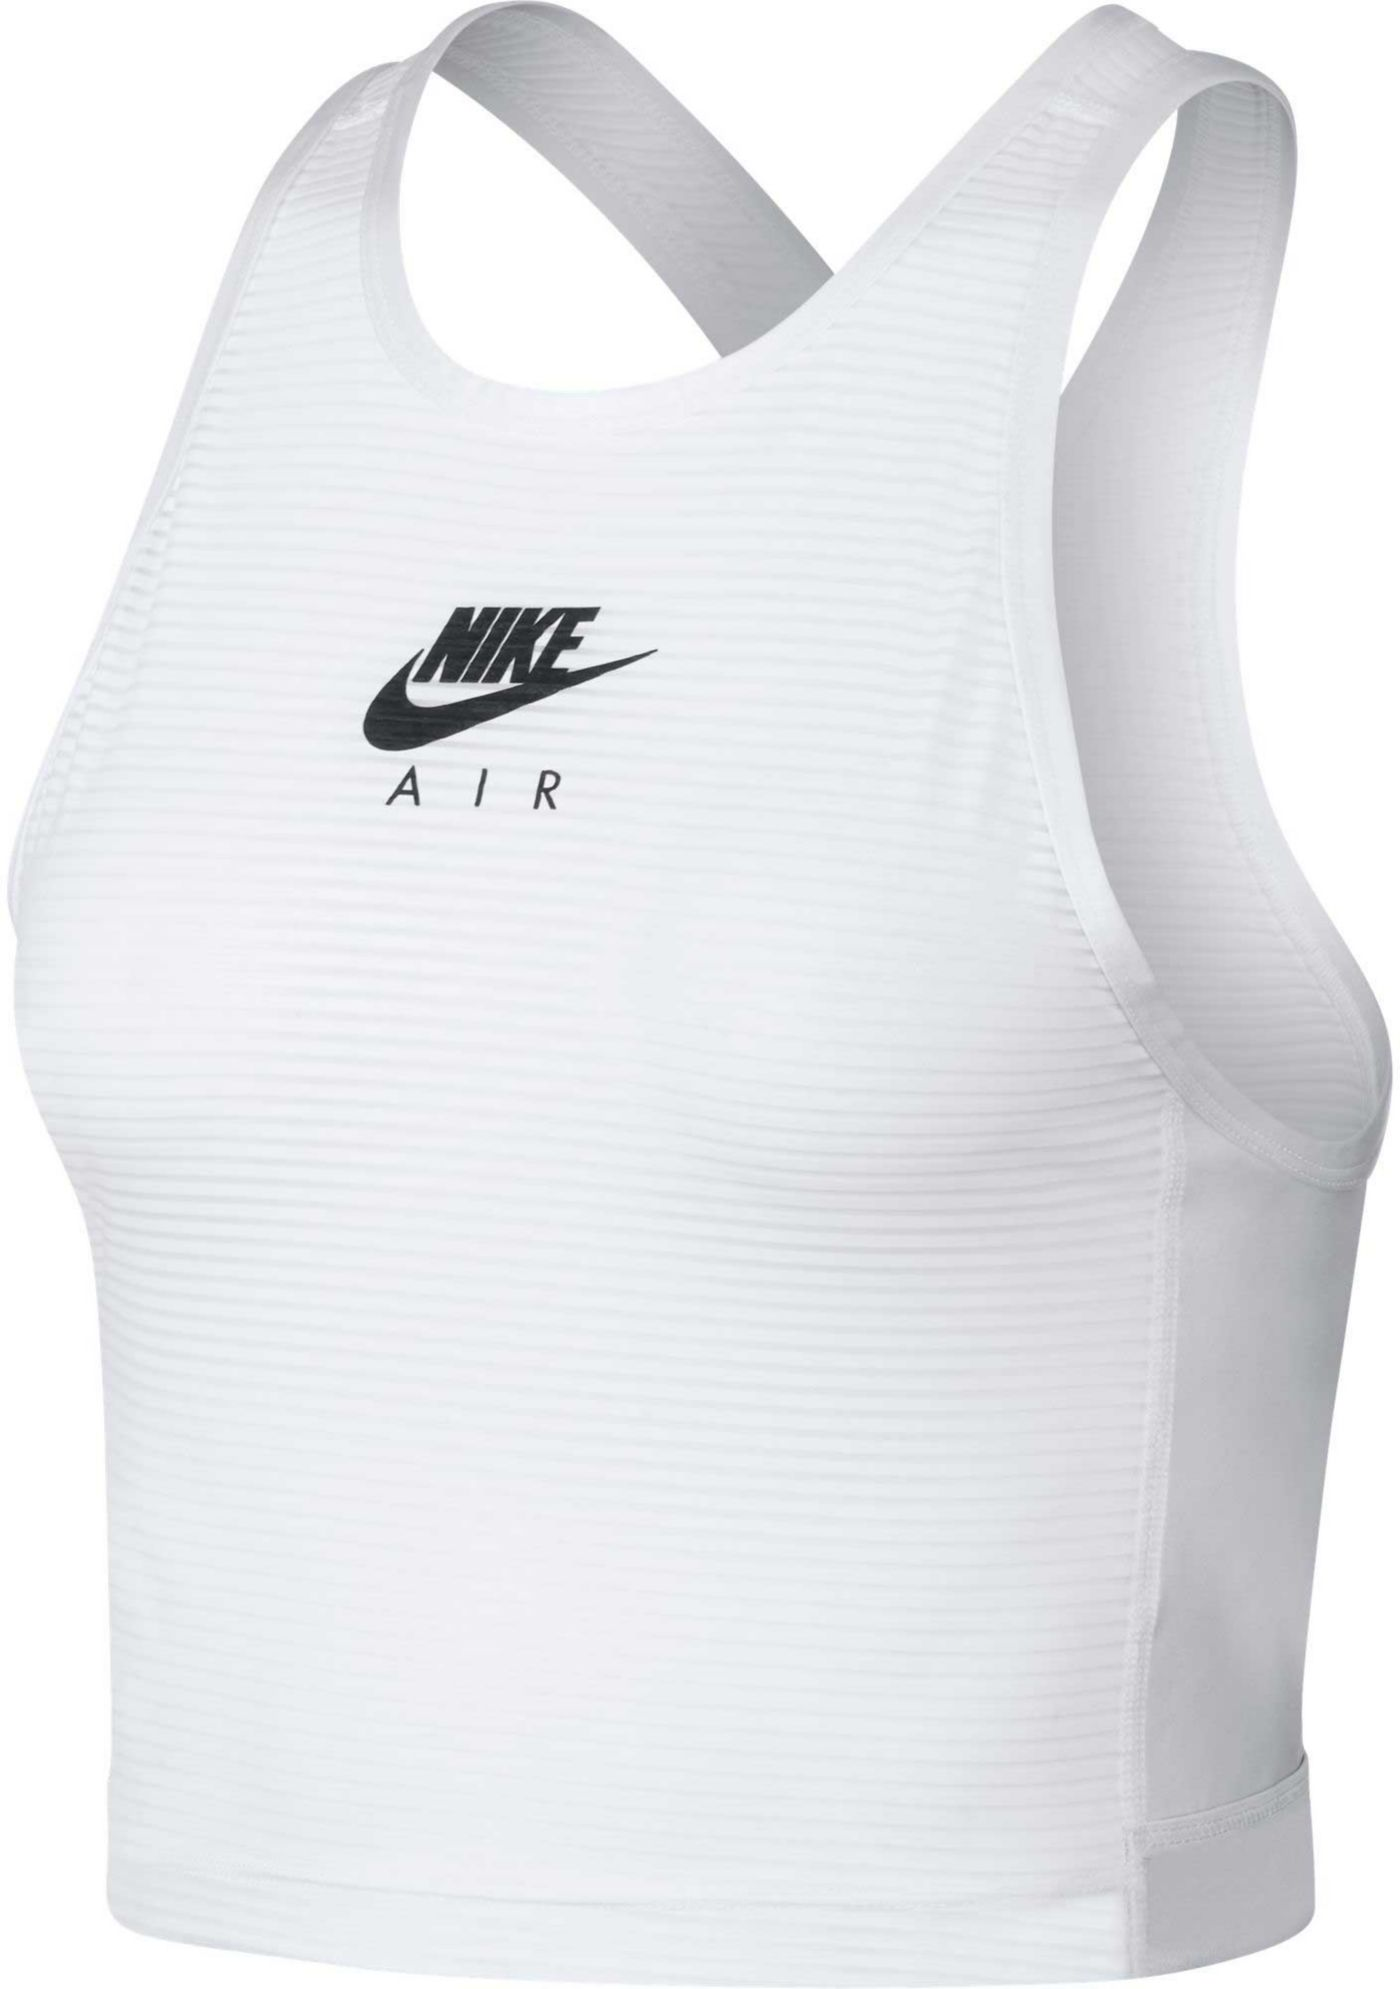 Nike Air Women's Miler Running Tank Top